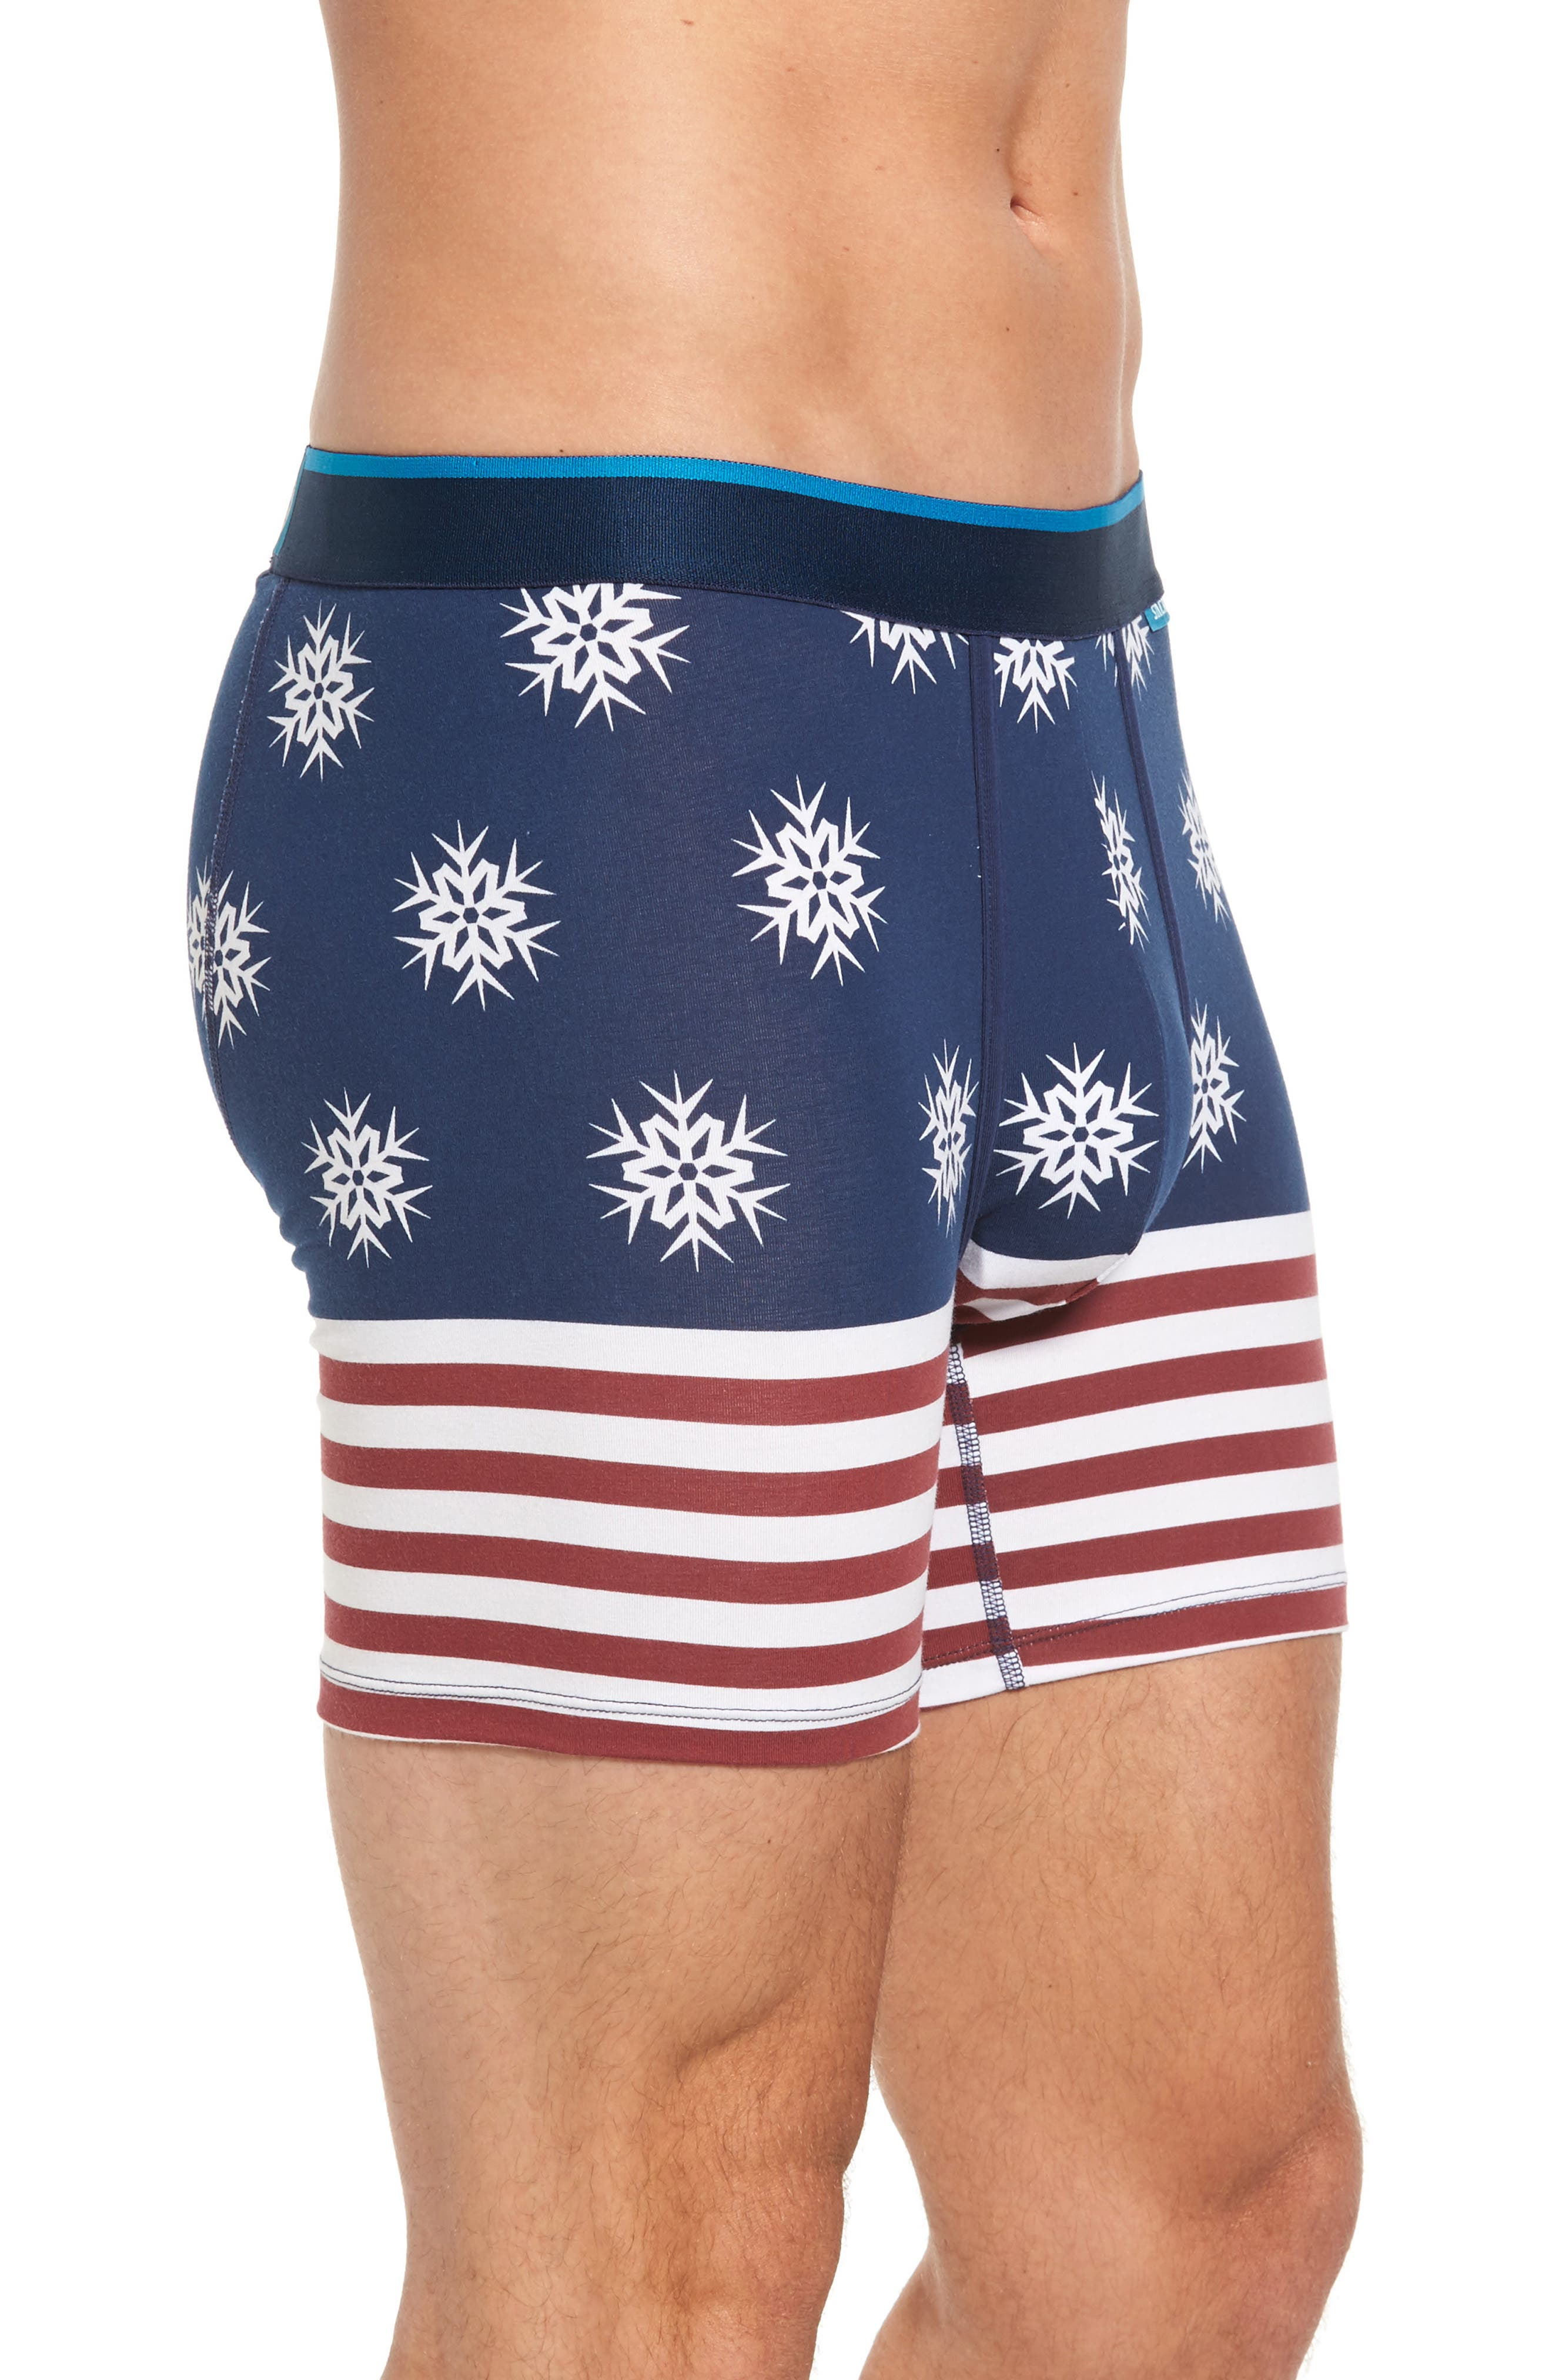 Flake Flag Boxer Briefs,                             Alternate thumbnail 3, color,                             400